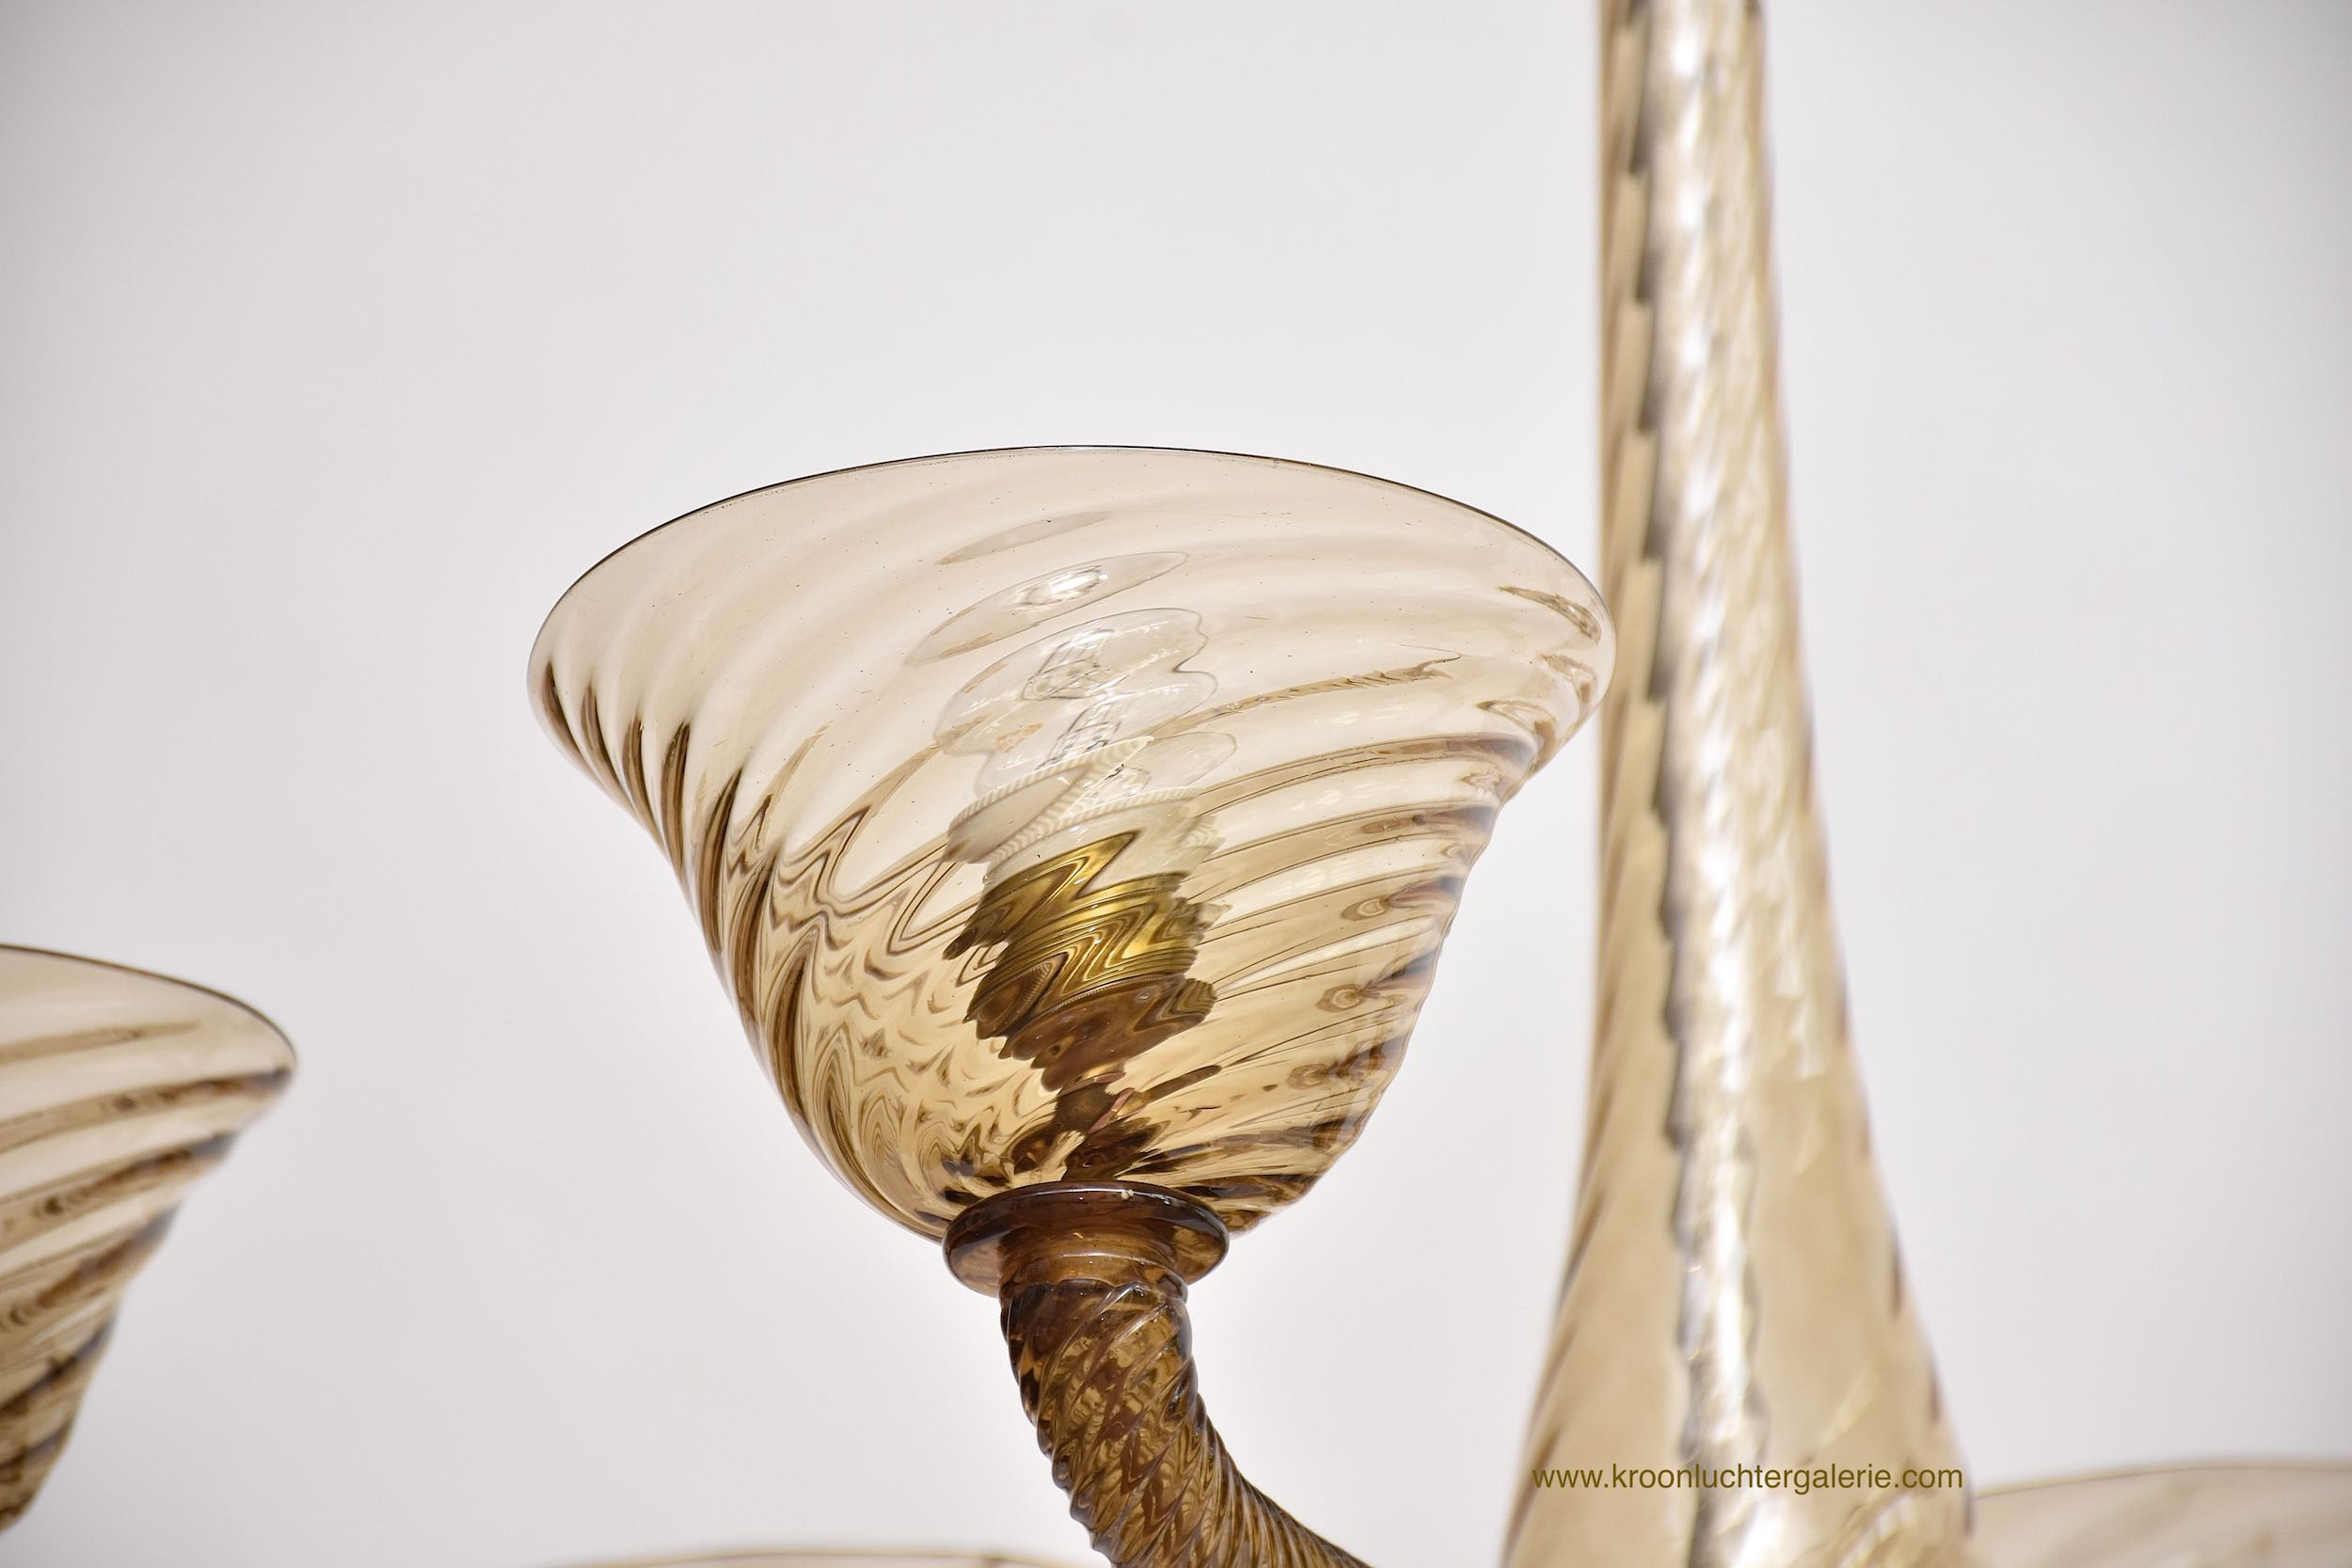 A rare Venetian oval shaped Murano chandelier